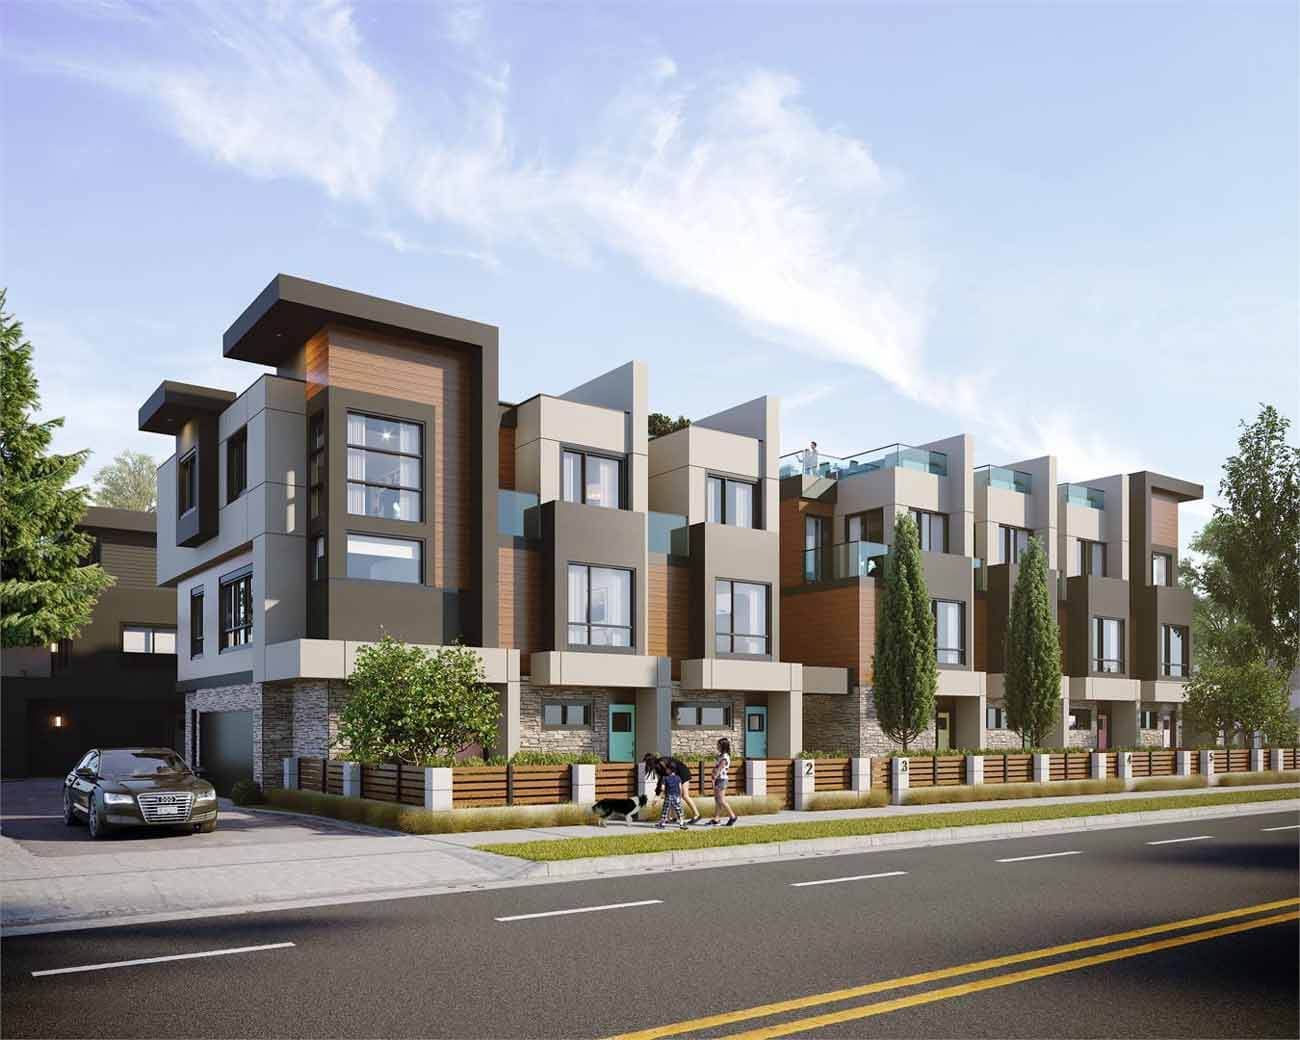 Williams Living By Natland Group – Prices, Availability, Plans